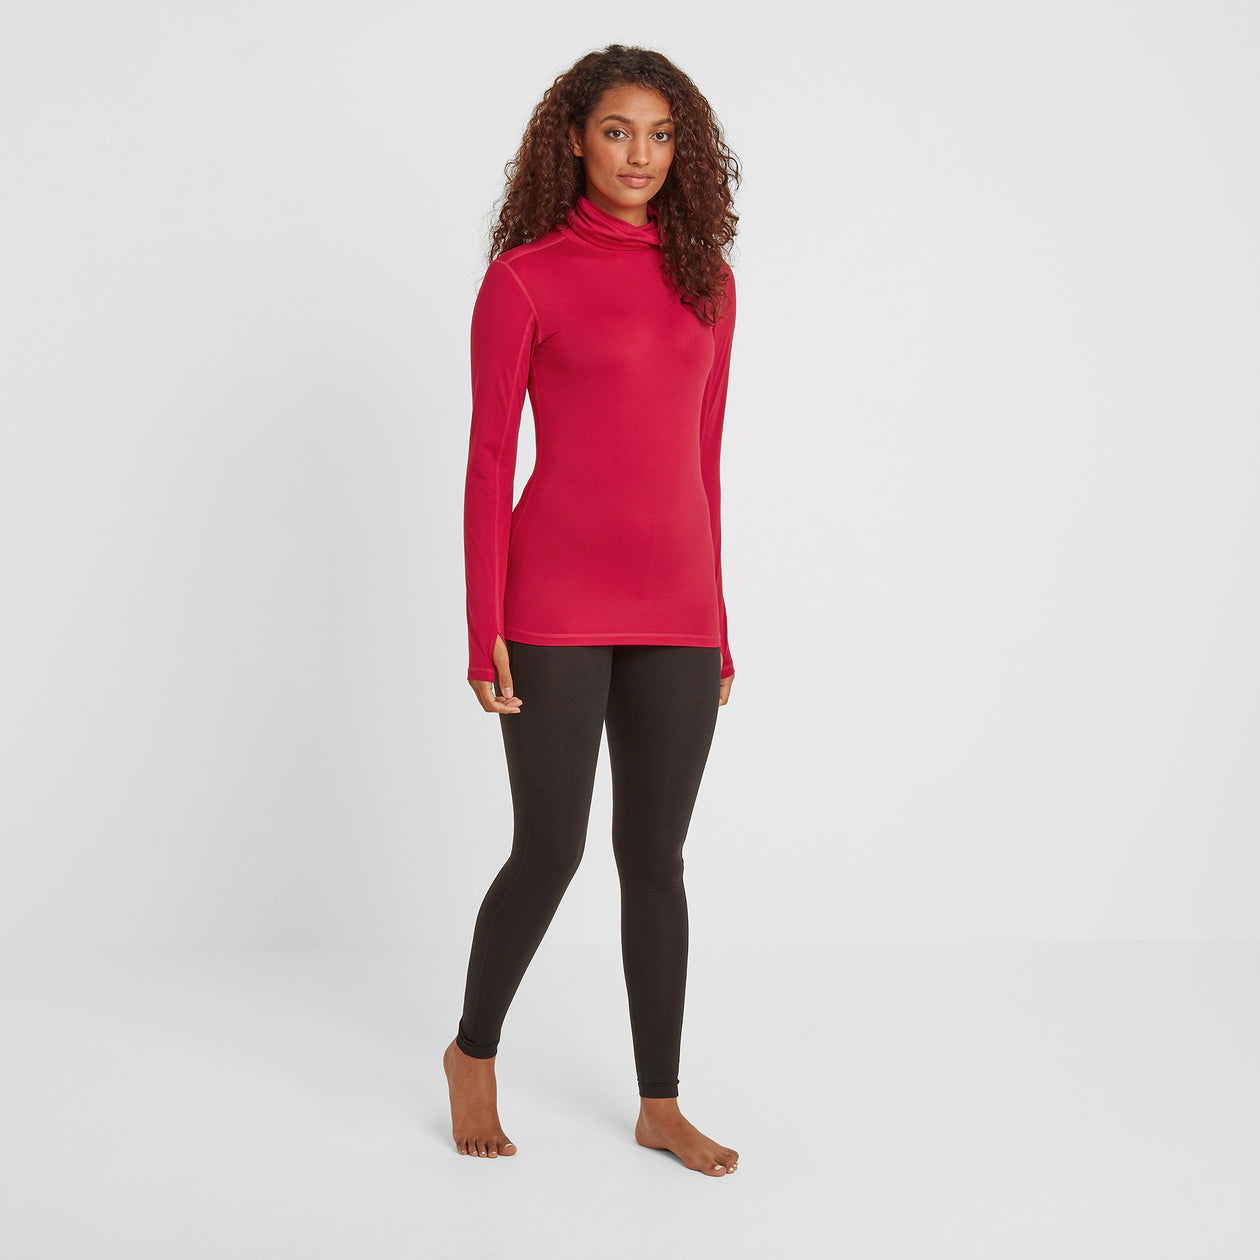 Snowdon Womens Thermal Roll Neck - Dark Pink image 4